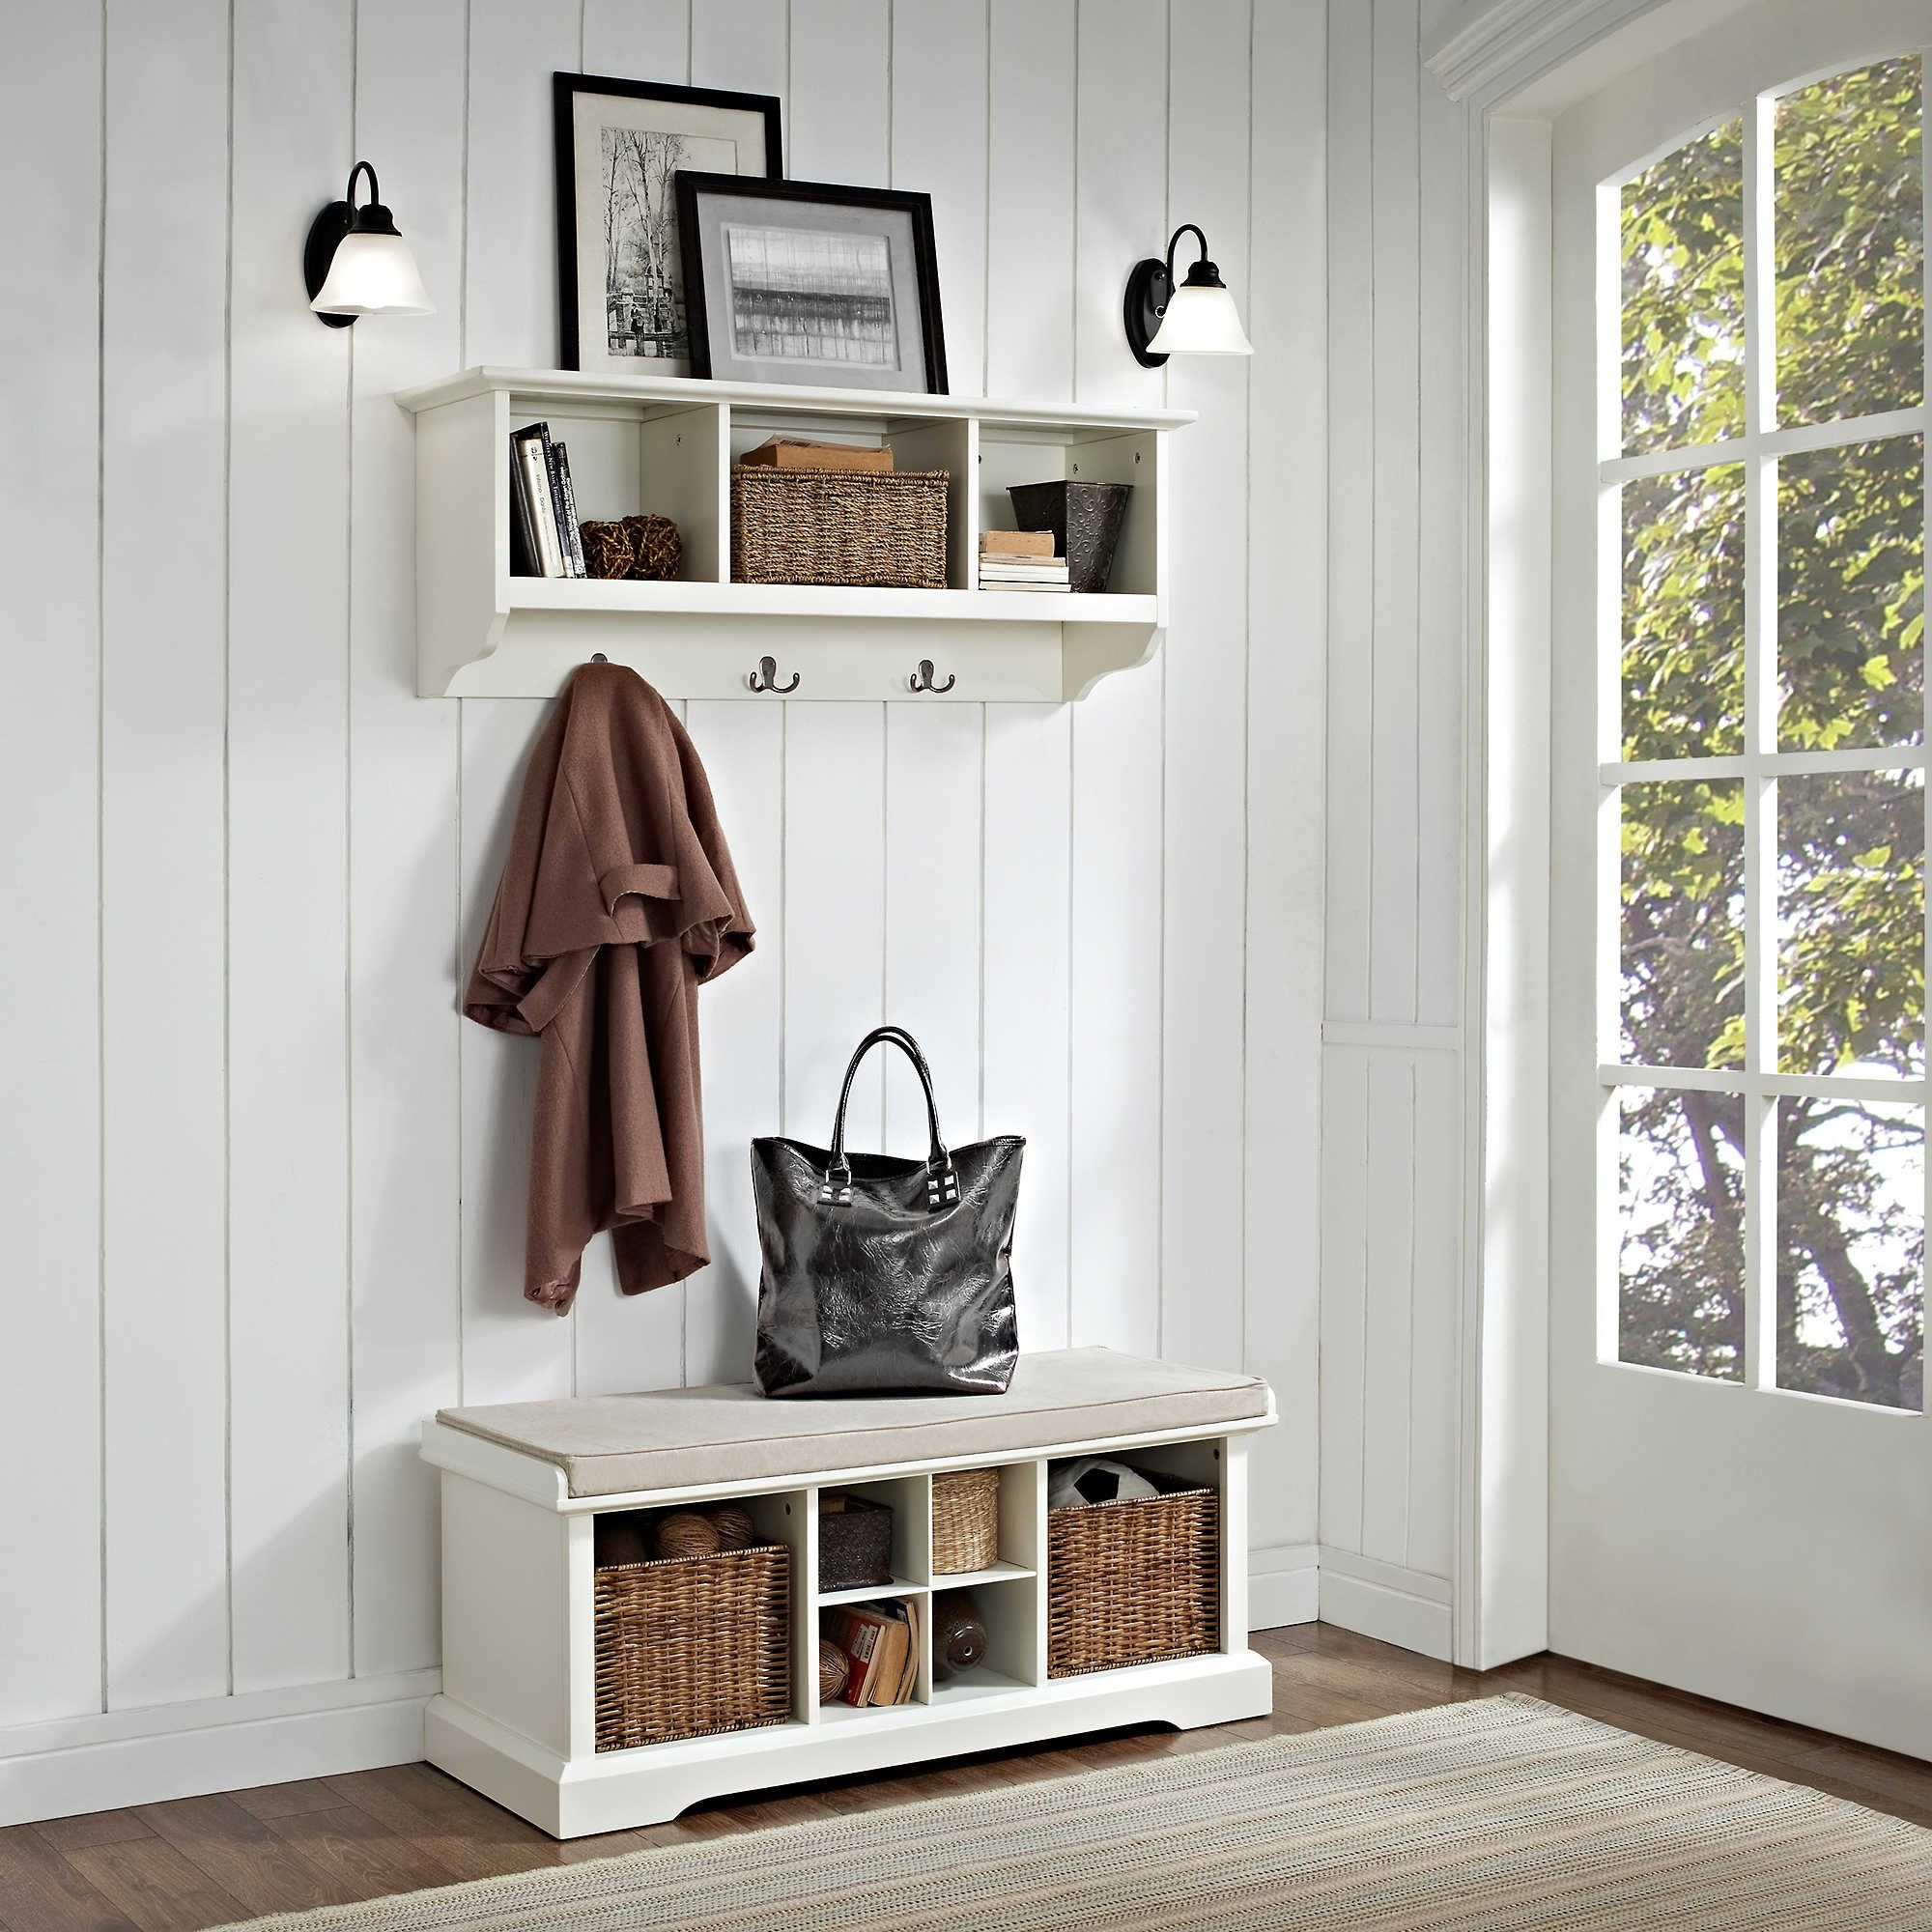 Beau Crosley Brennan Entryway Storage Bench With Storage Shelf   White   Indoor  Benches At Hayneedle